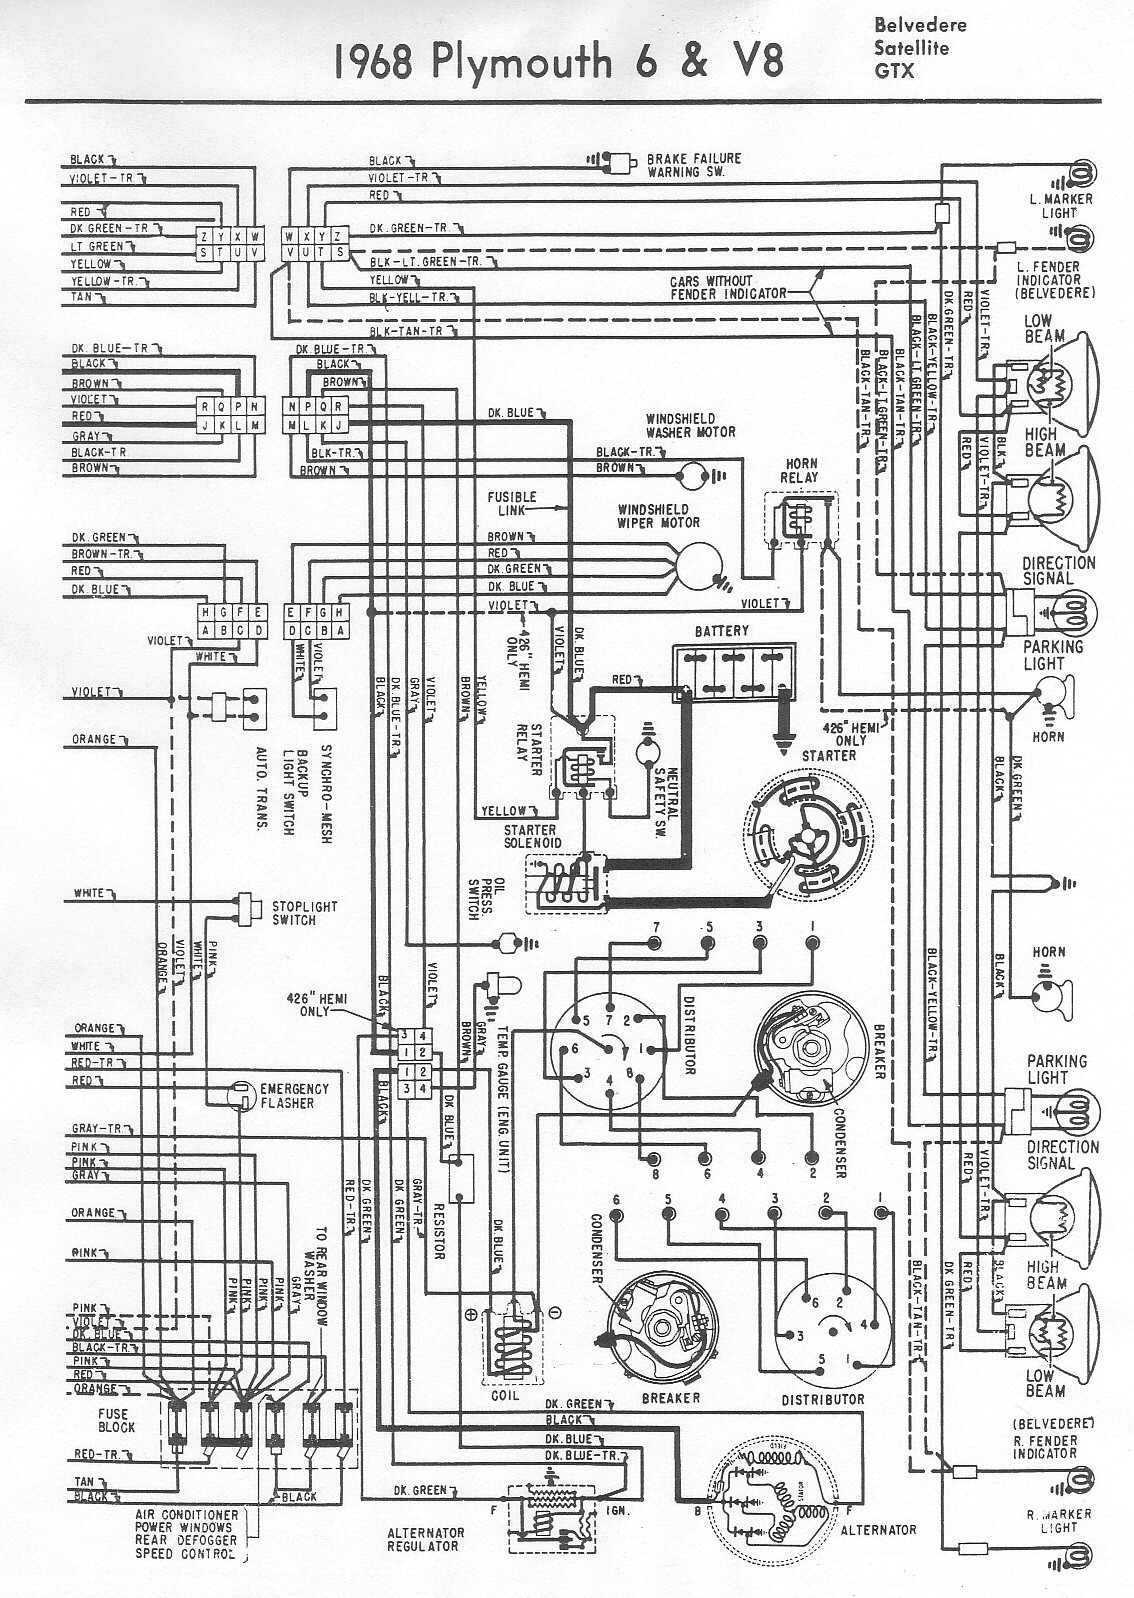 DIAGRAM] 1968 Plymouth Roadrunner Wiring Diagram FULL Version HD Quality Wiring  Diagram - ATQRFUSE1036.RISTORANTEPRATOVERDE.ITatqrfuse1036.ristorantepratoverde.it